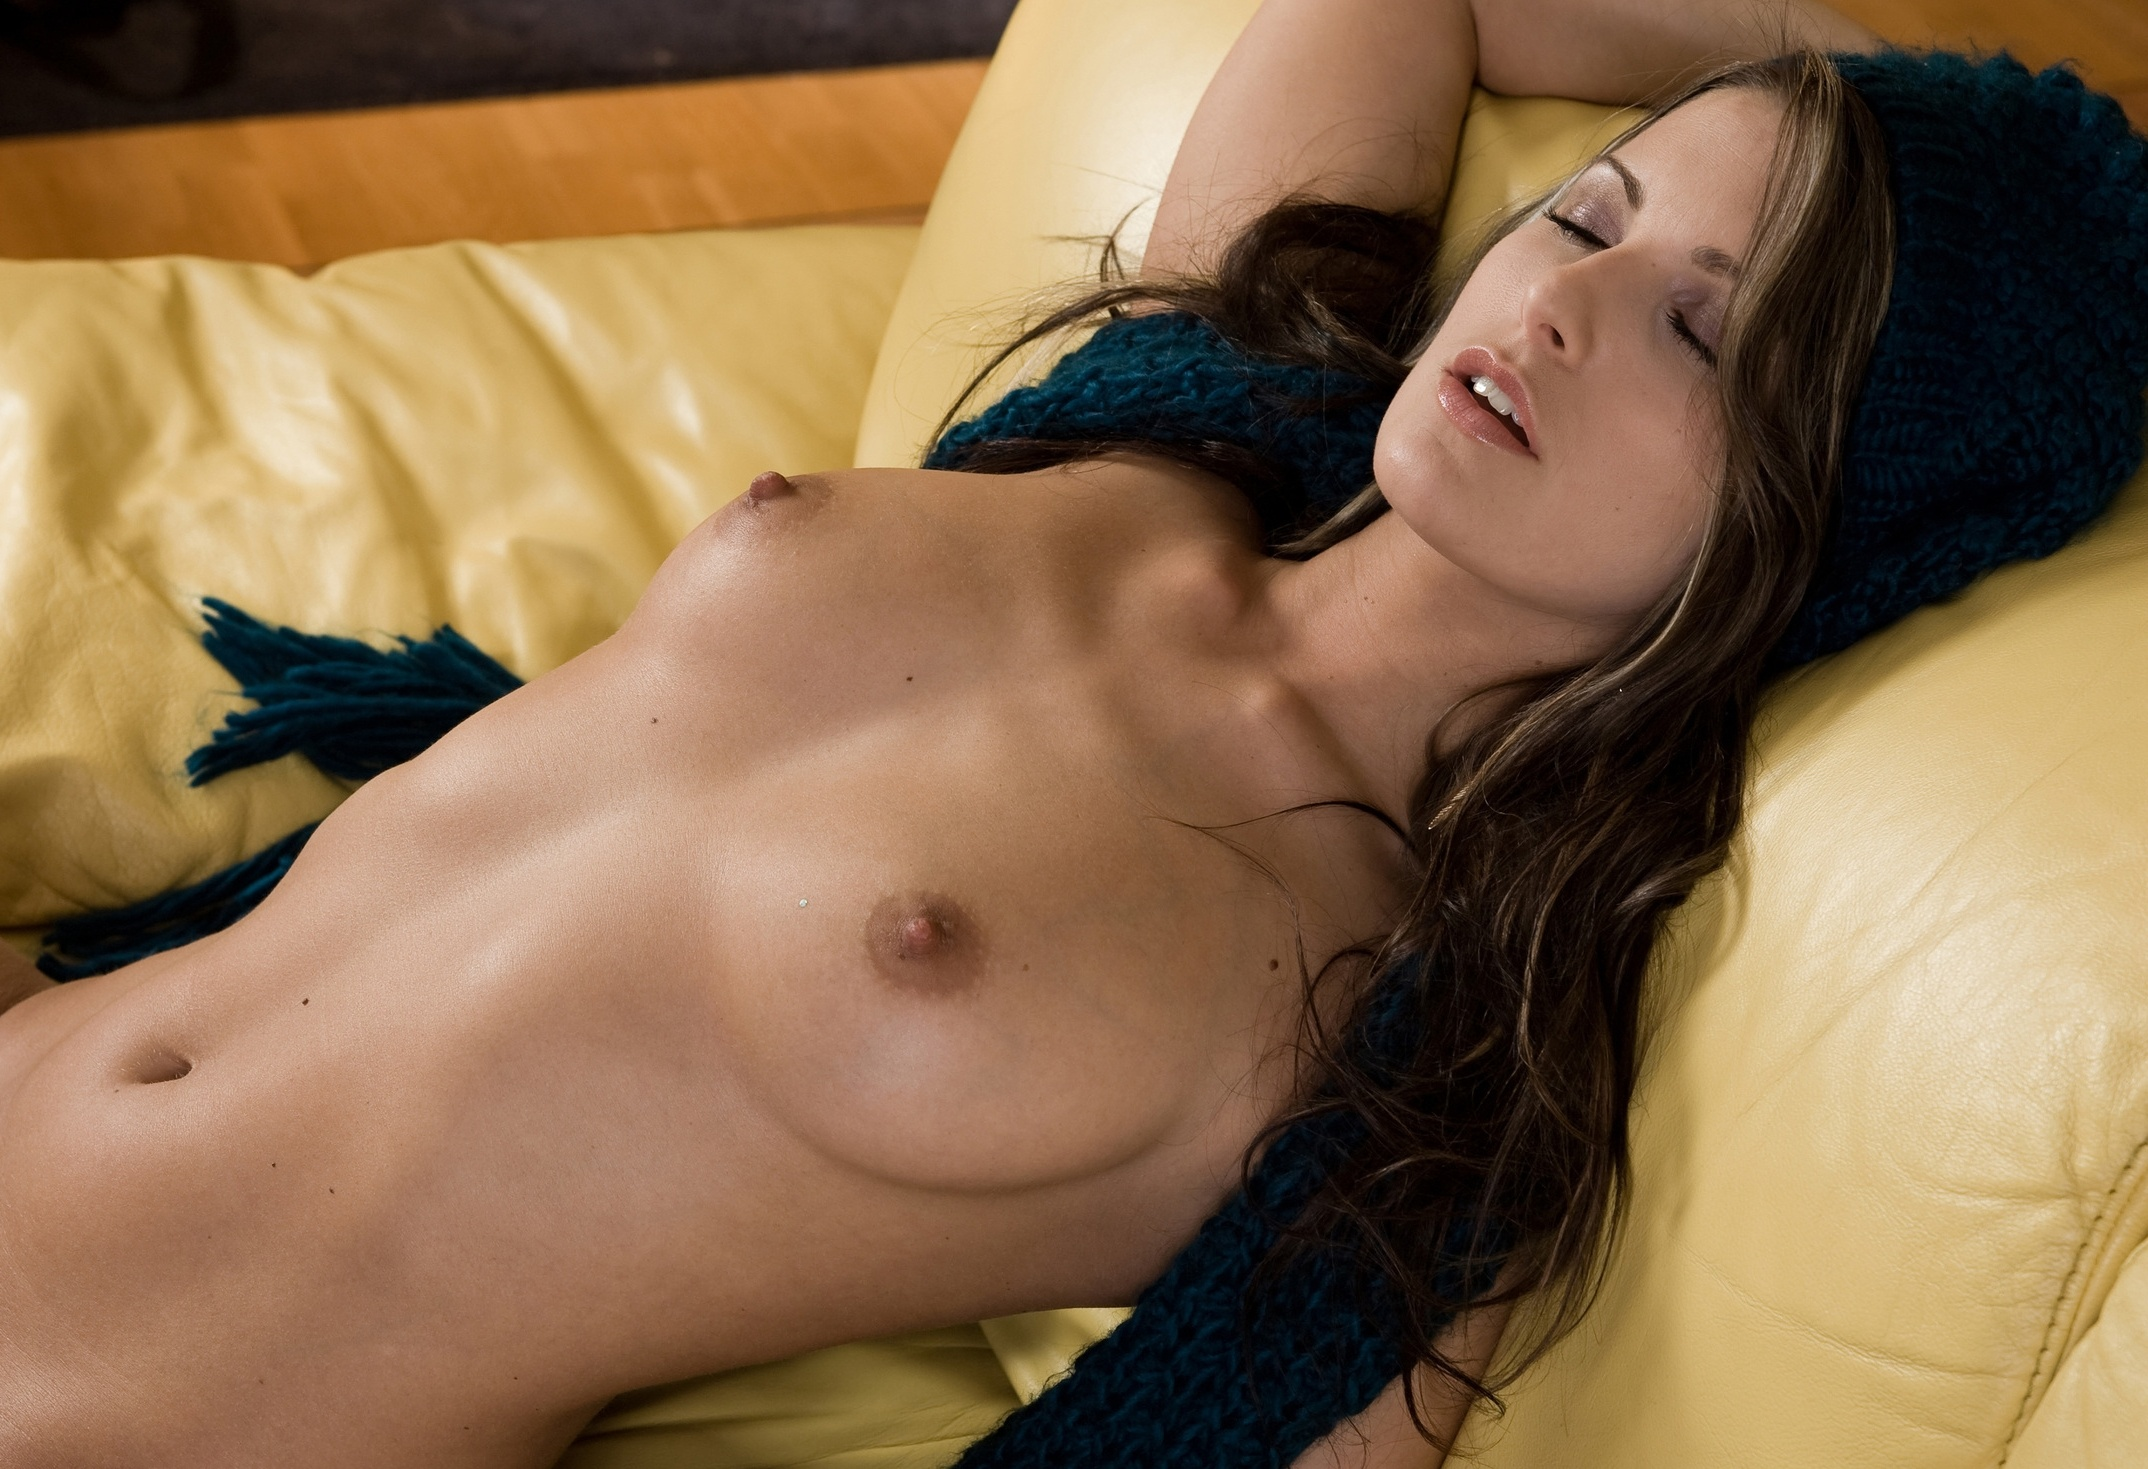 Wallpaper nude, tits, brunette, sleeping, hot, girl desktop wallpaper - XXX  walls - ID: 39176 - ftopx.com